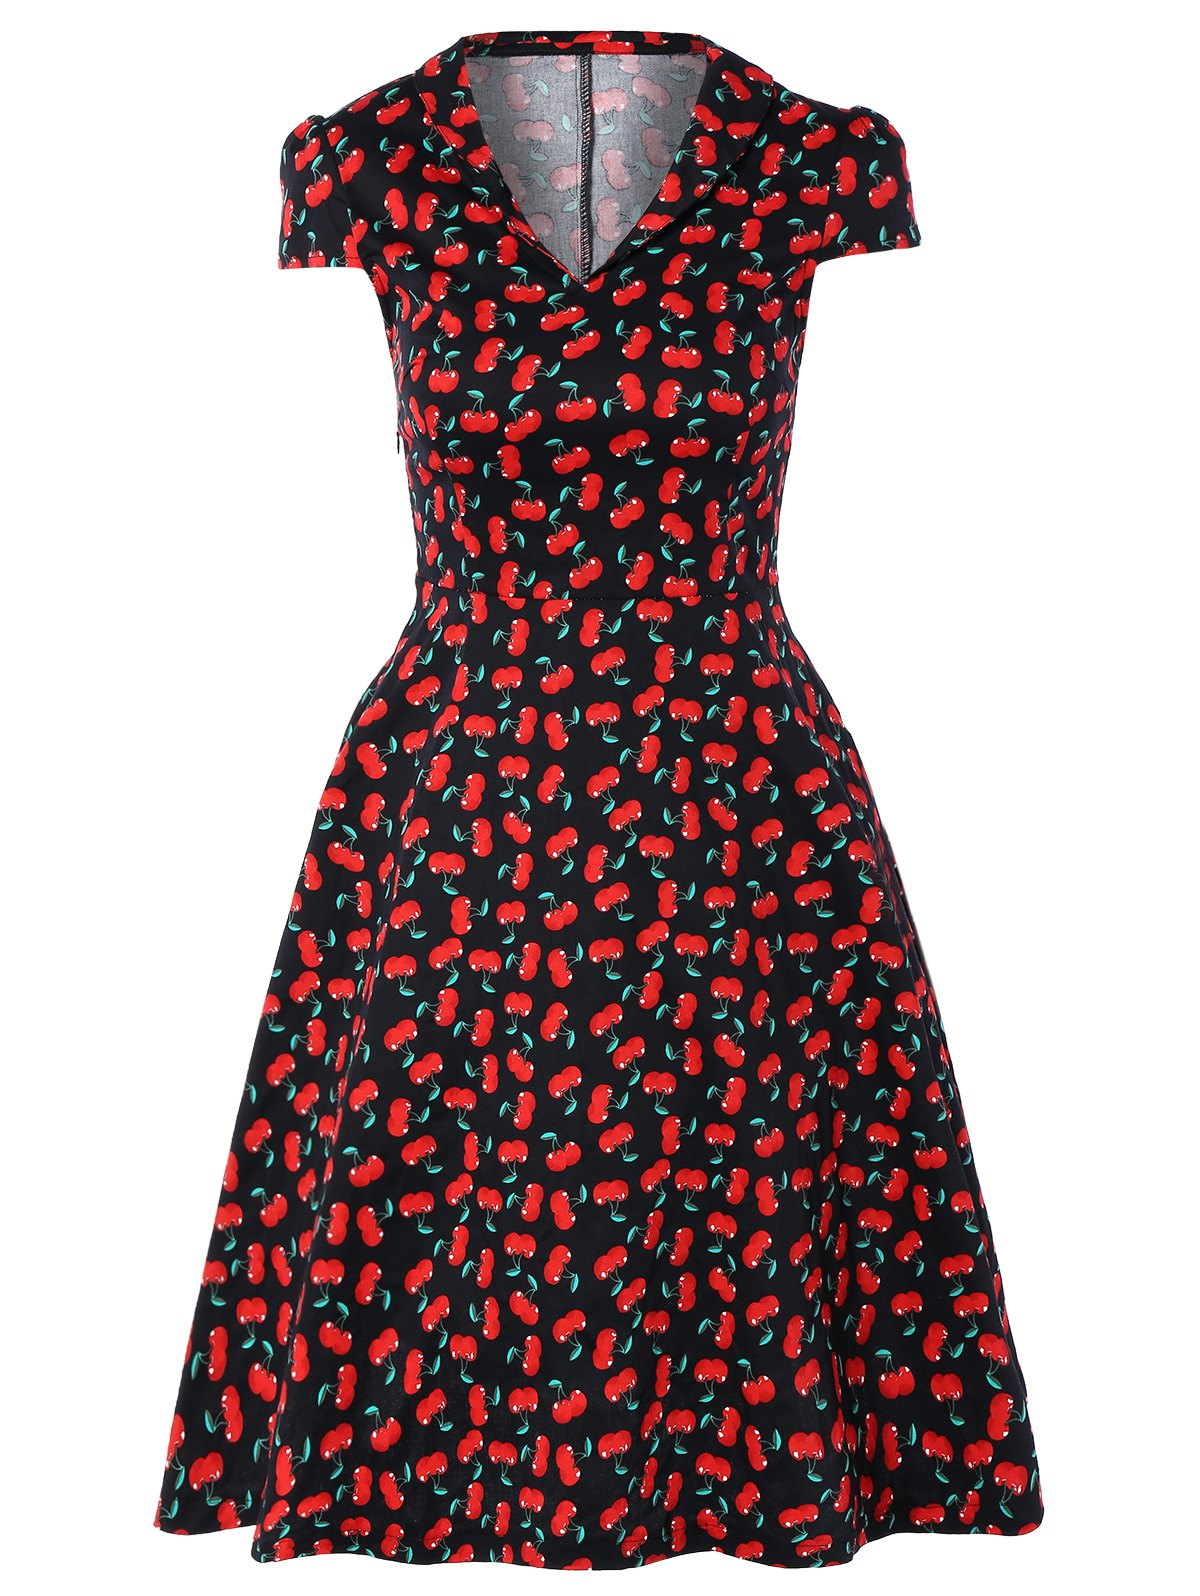 Vintage V-Neck Cherry Print Fit and Flare Dress